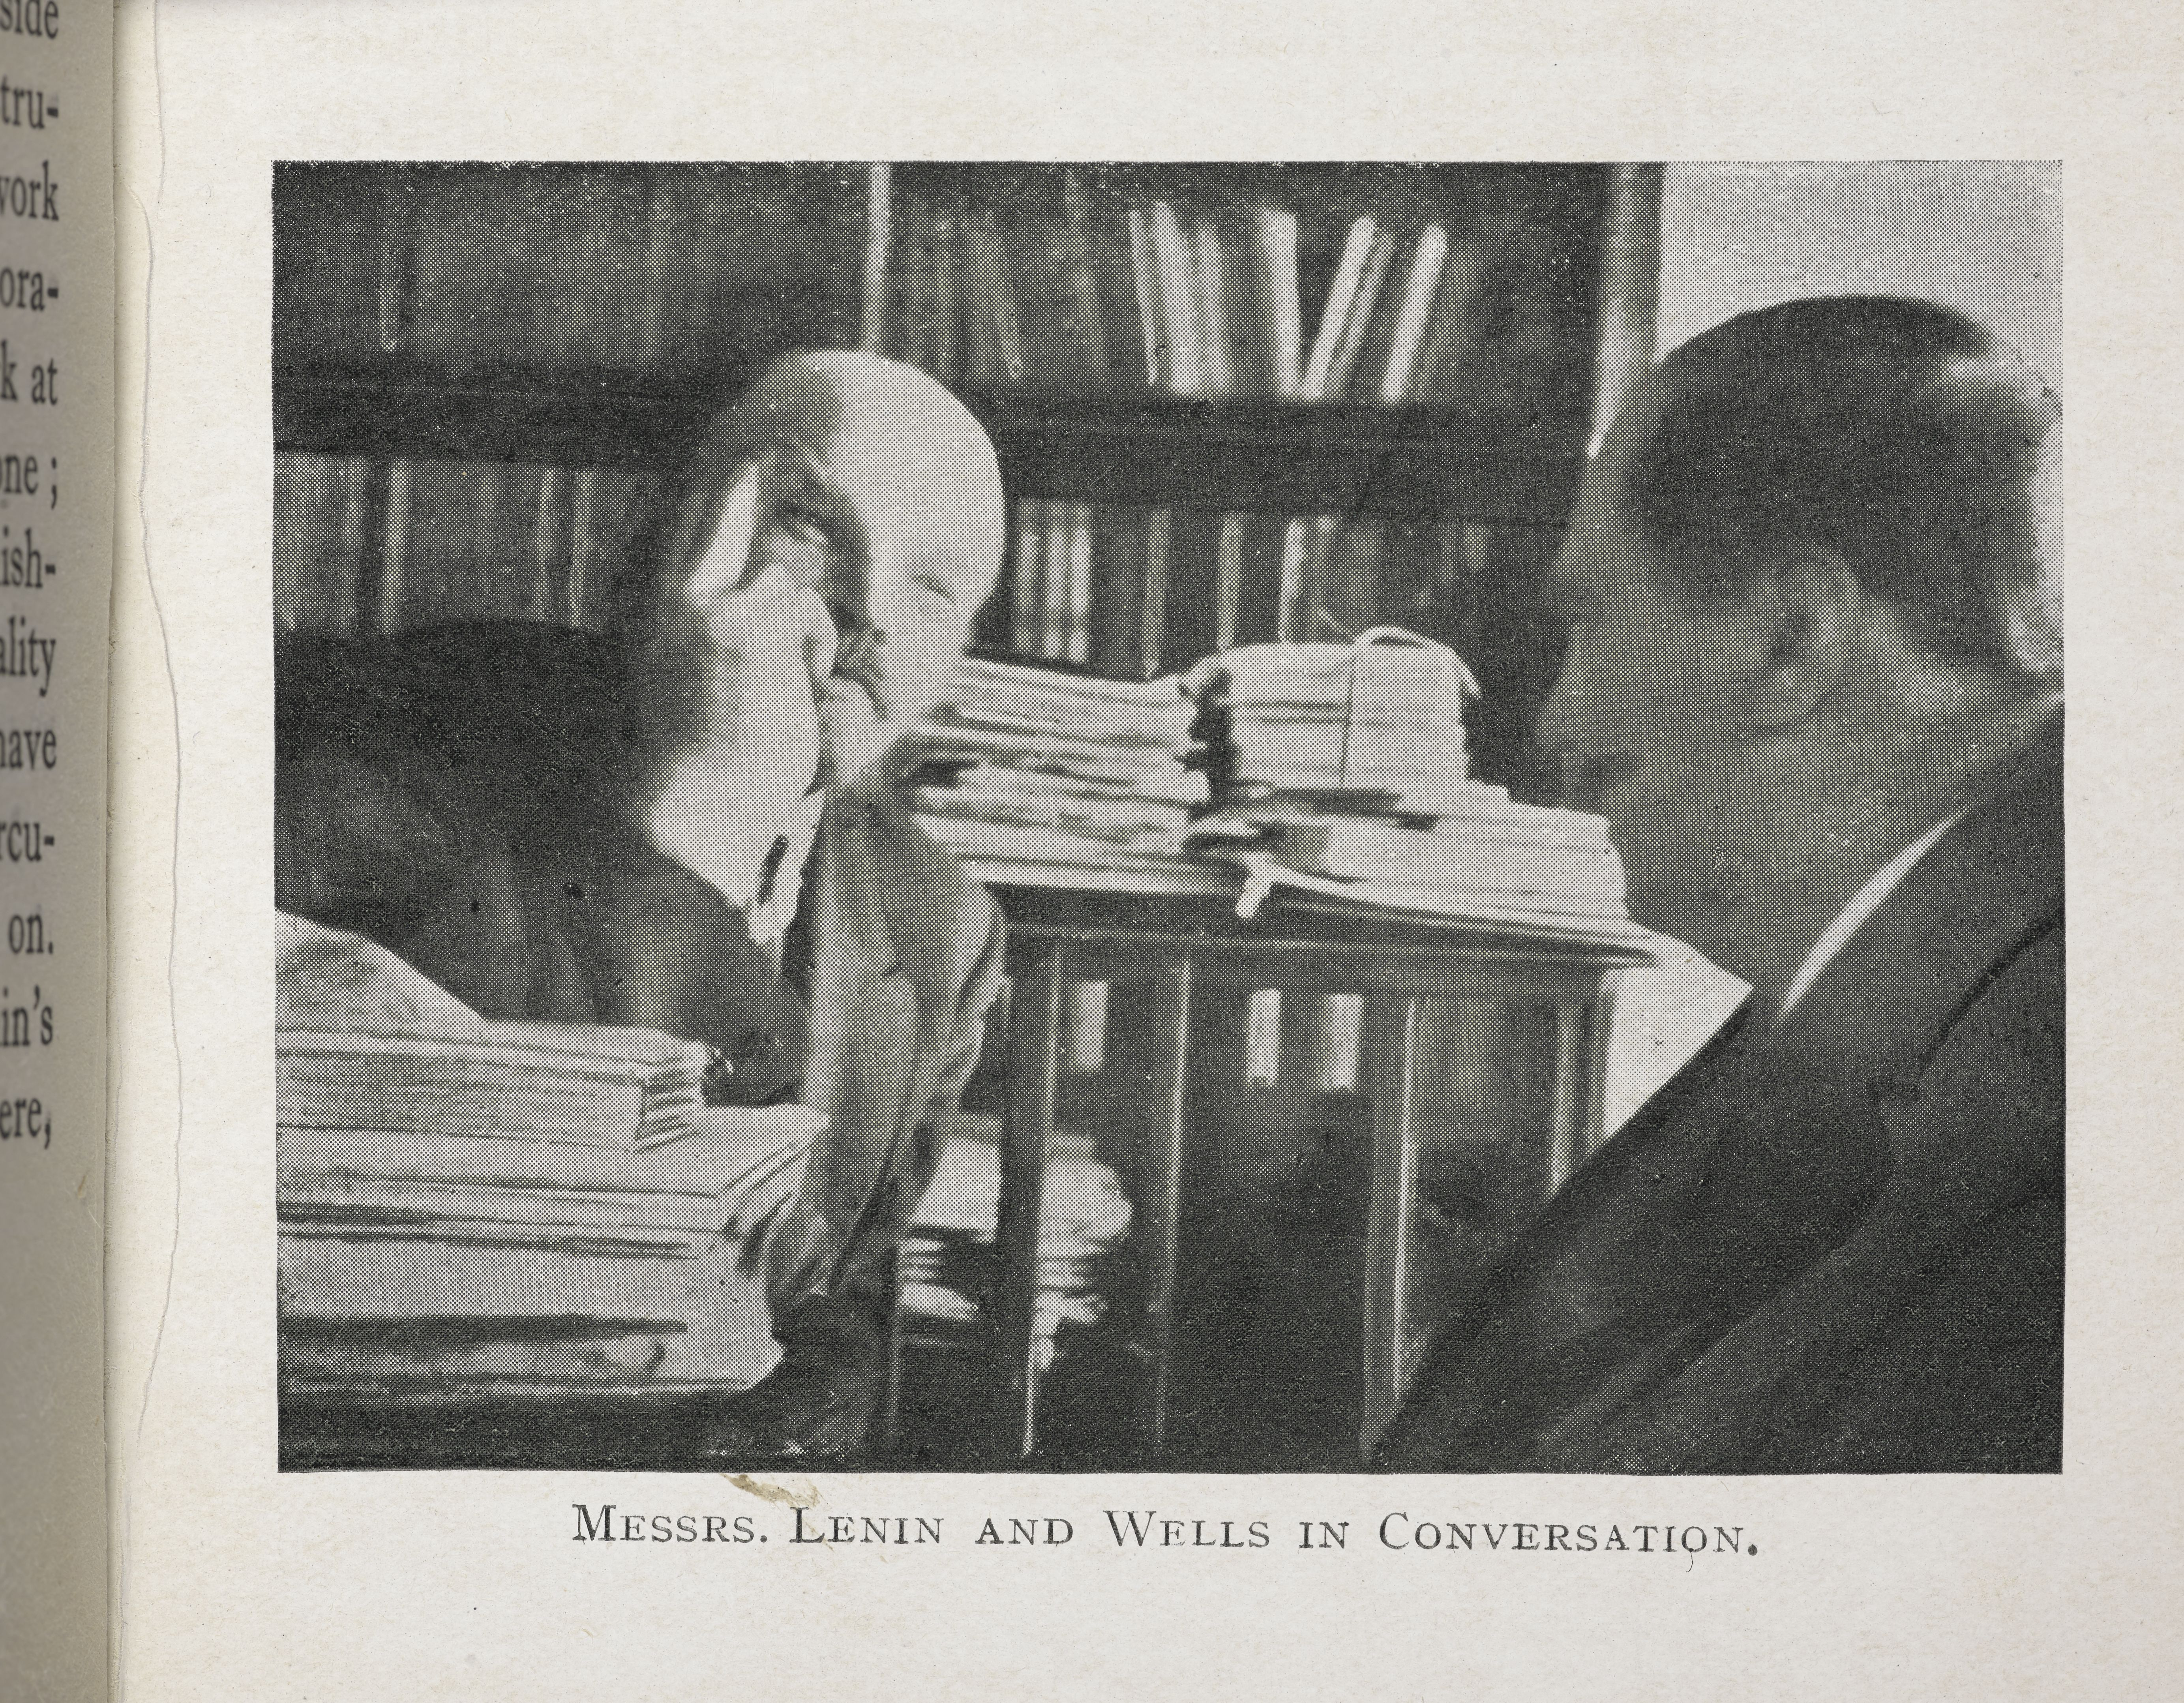 H.G. Wells in conversation with Lenin, from 'Russia in Shadows, 1920 (c) British Library Board